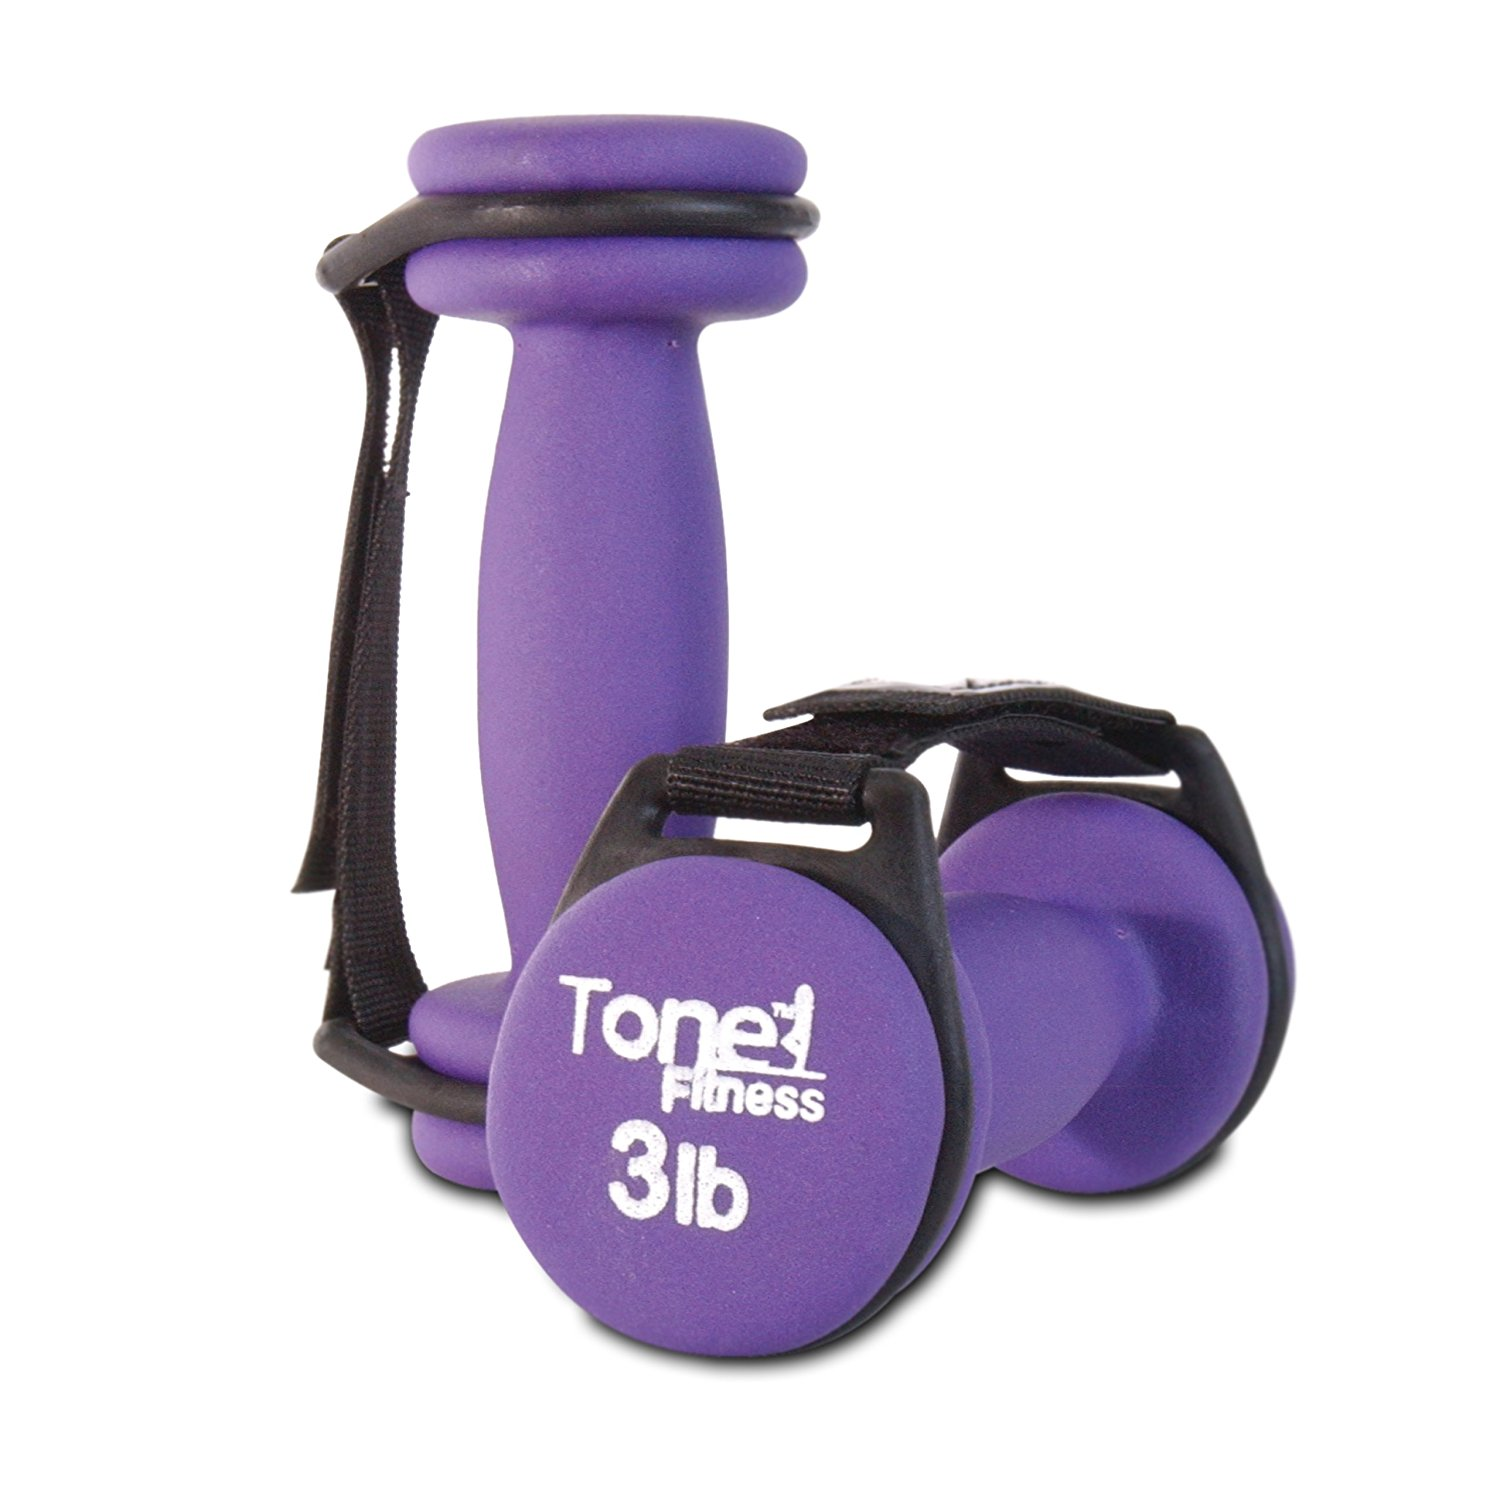 Tone Fitness Walking Dumbbells with Handles– Available in 3 Colors, Several Weight Options